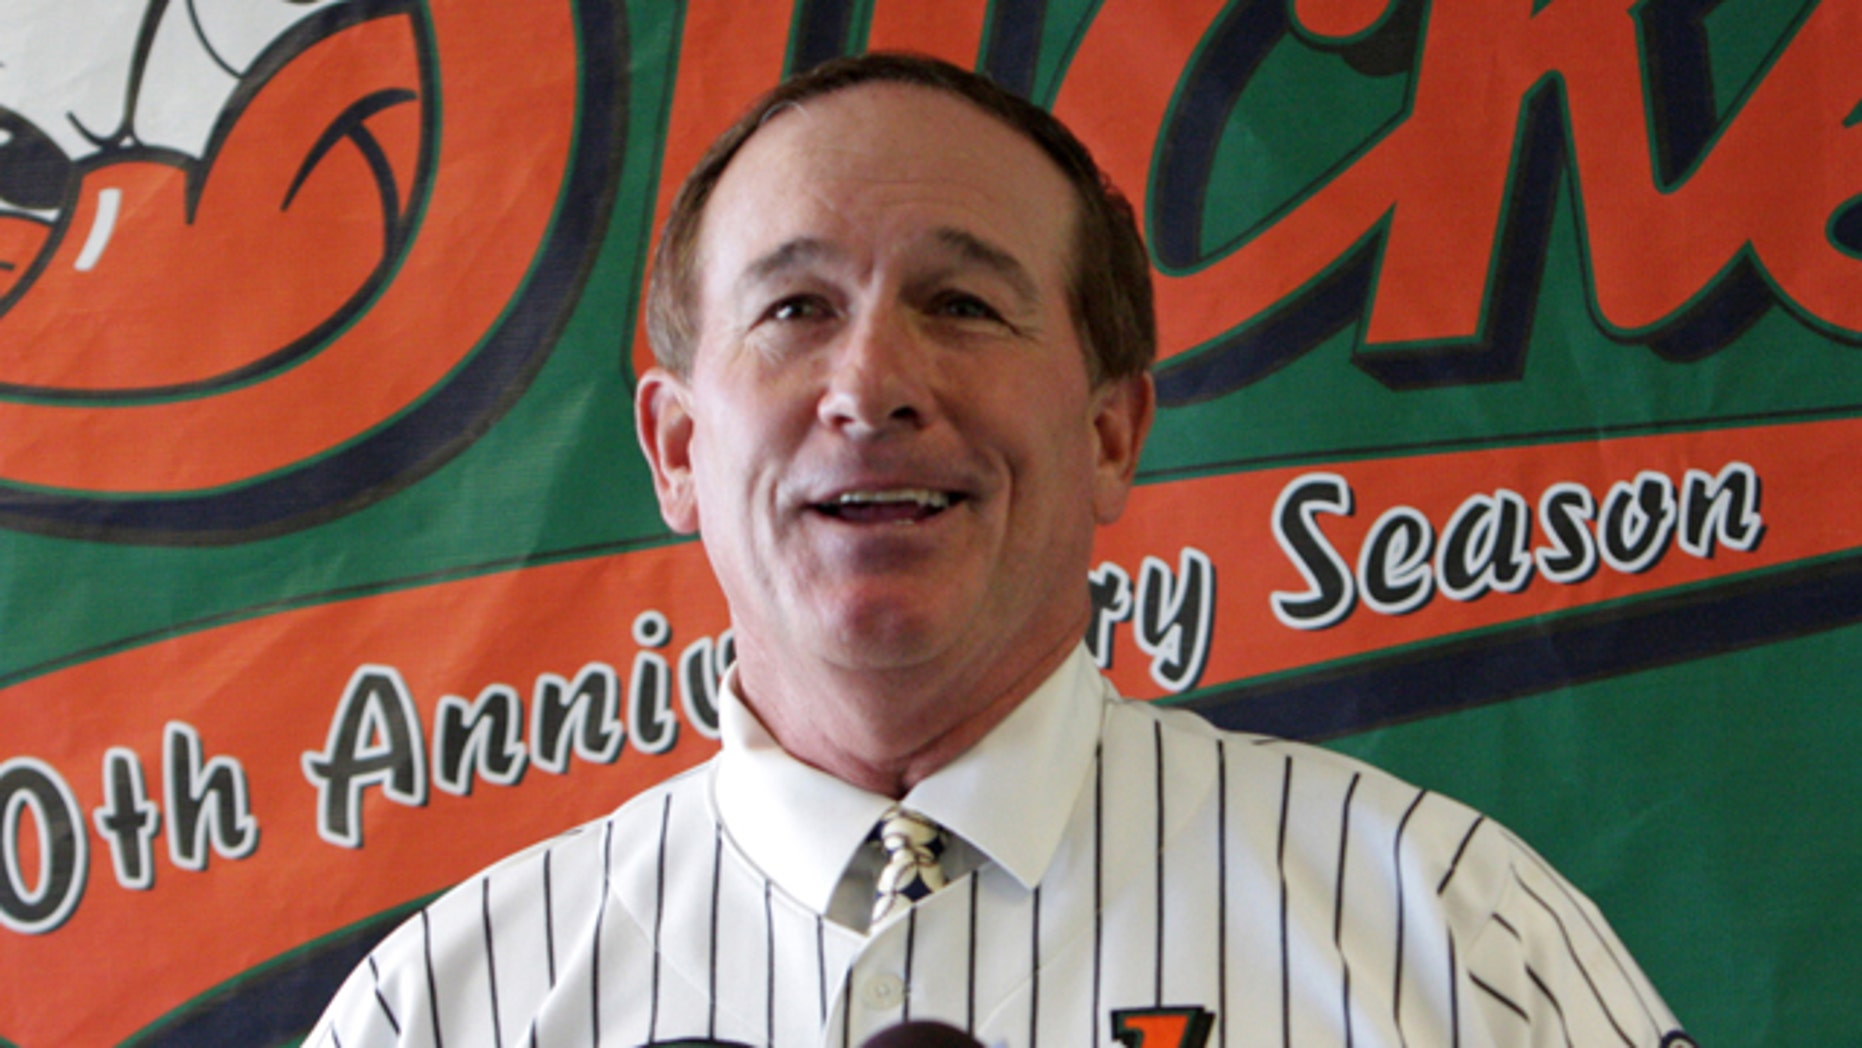 In this Nov. 10, 2008, file photo, former New York Mets catcher Gary Carter addresses the media at a news conference in Central Islip, N.Y., where he was introduced as the manager of the Atlantic League's Long Island Ducks.